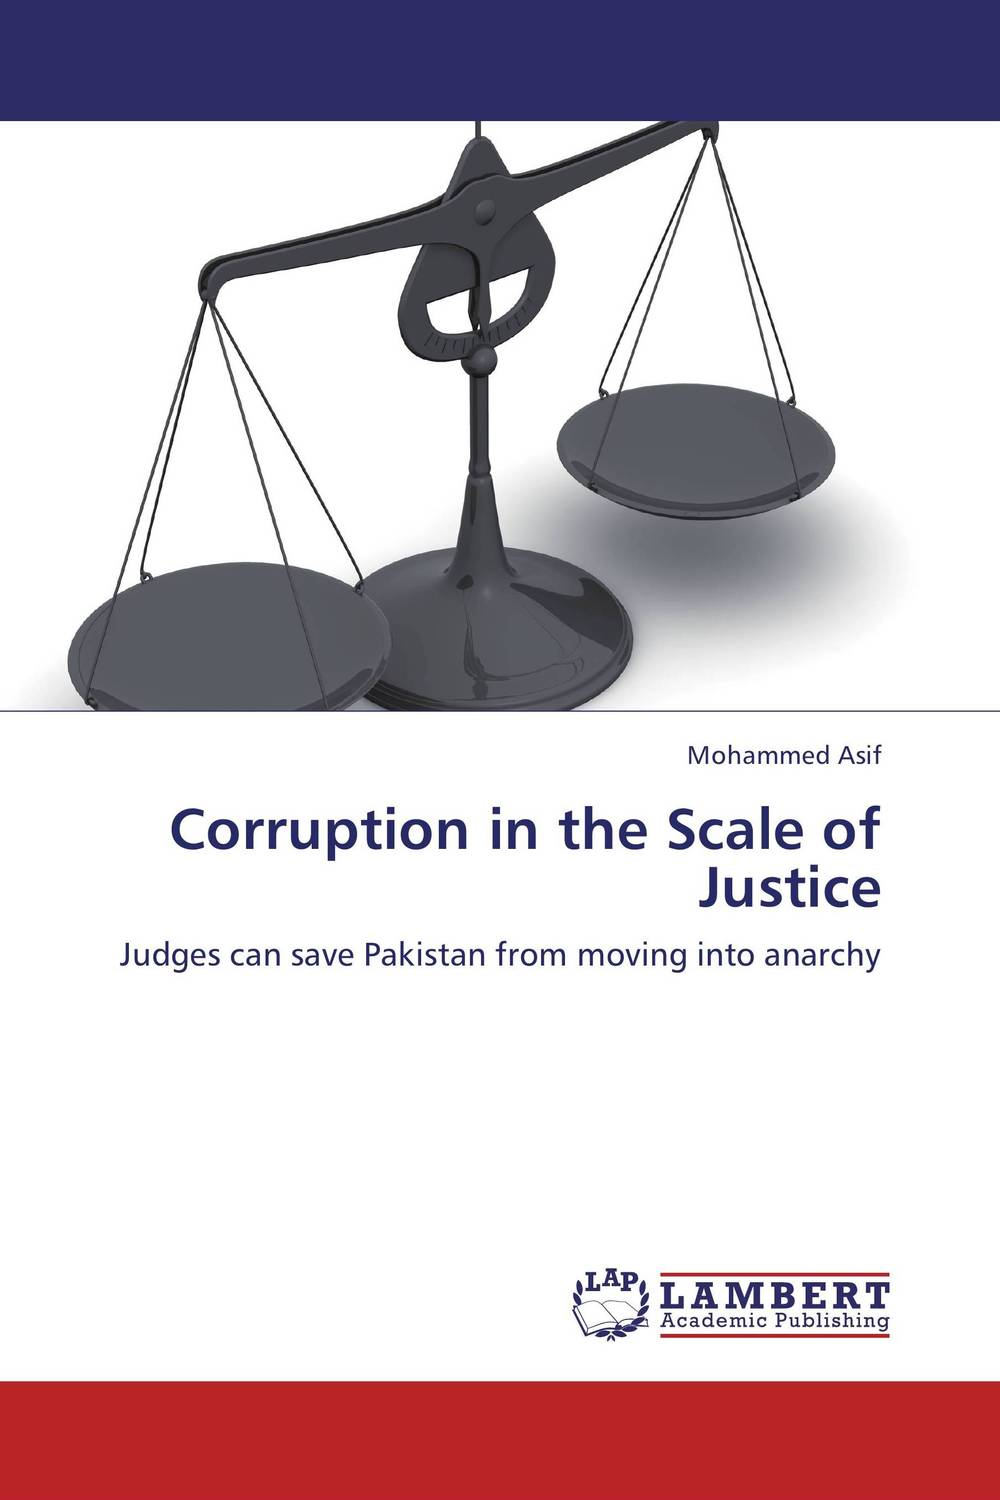 Corruption in the Scale of Justice sam stewart mutabazi mob justice in uganda lack of faith in the judicial process